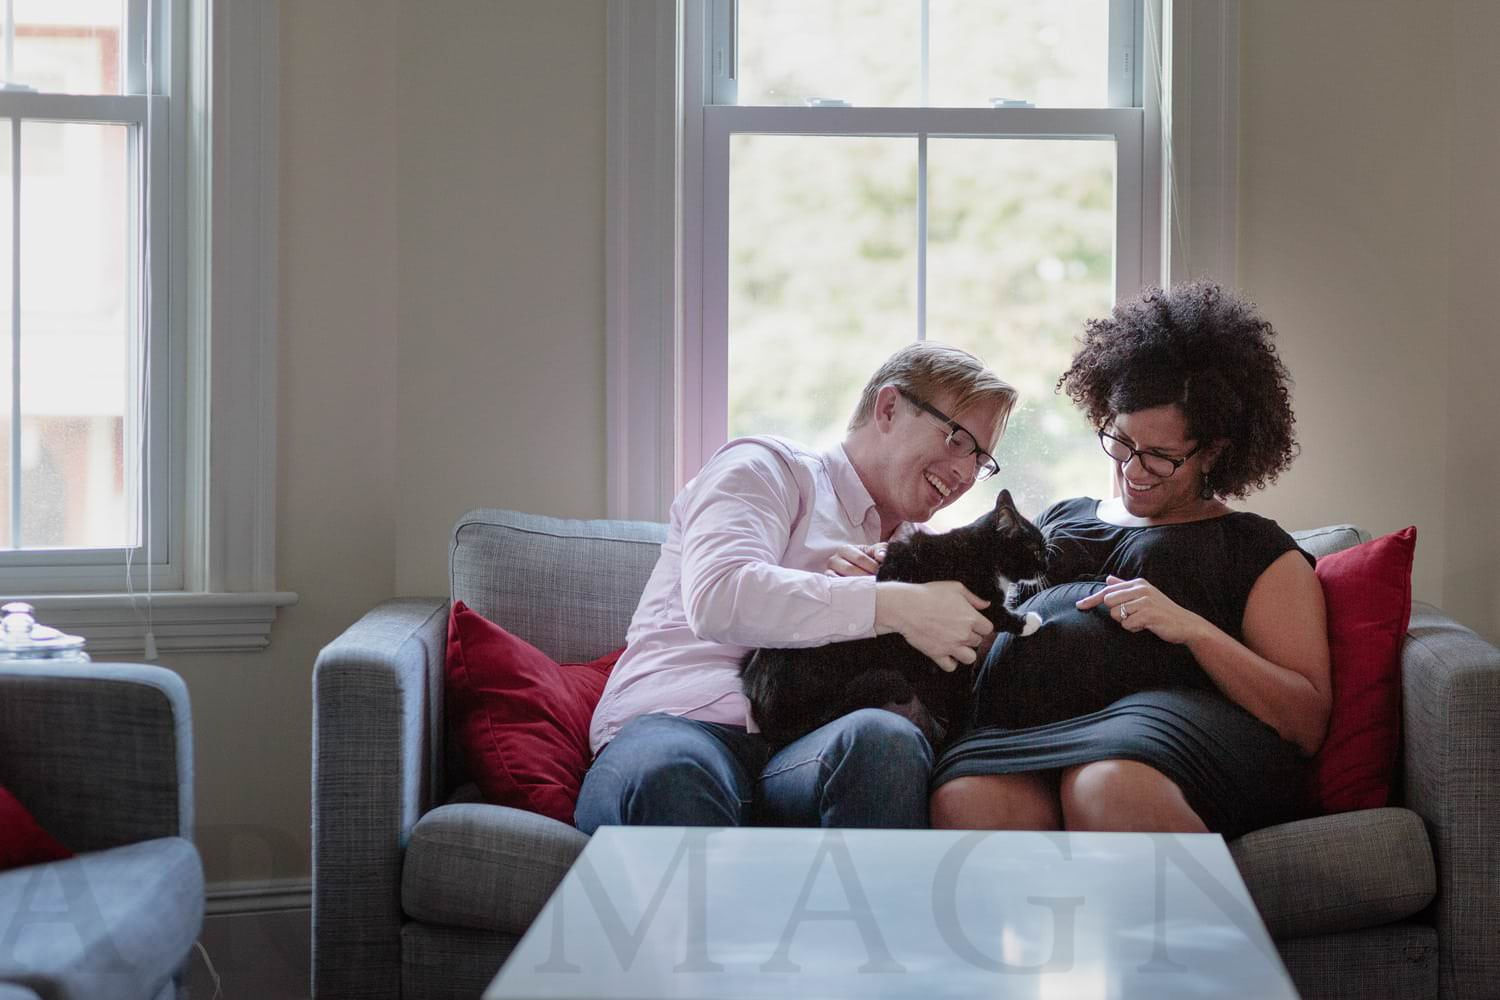 pregnancy photography boston jamaica plain natural light living room with cat